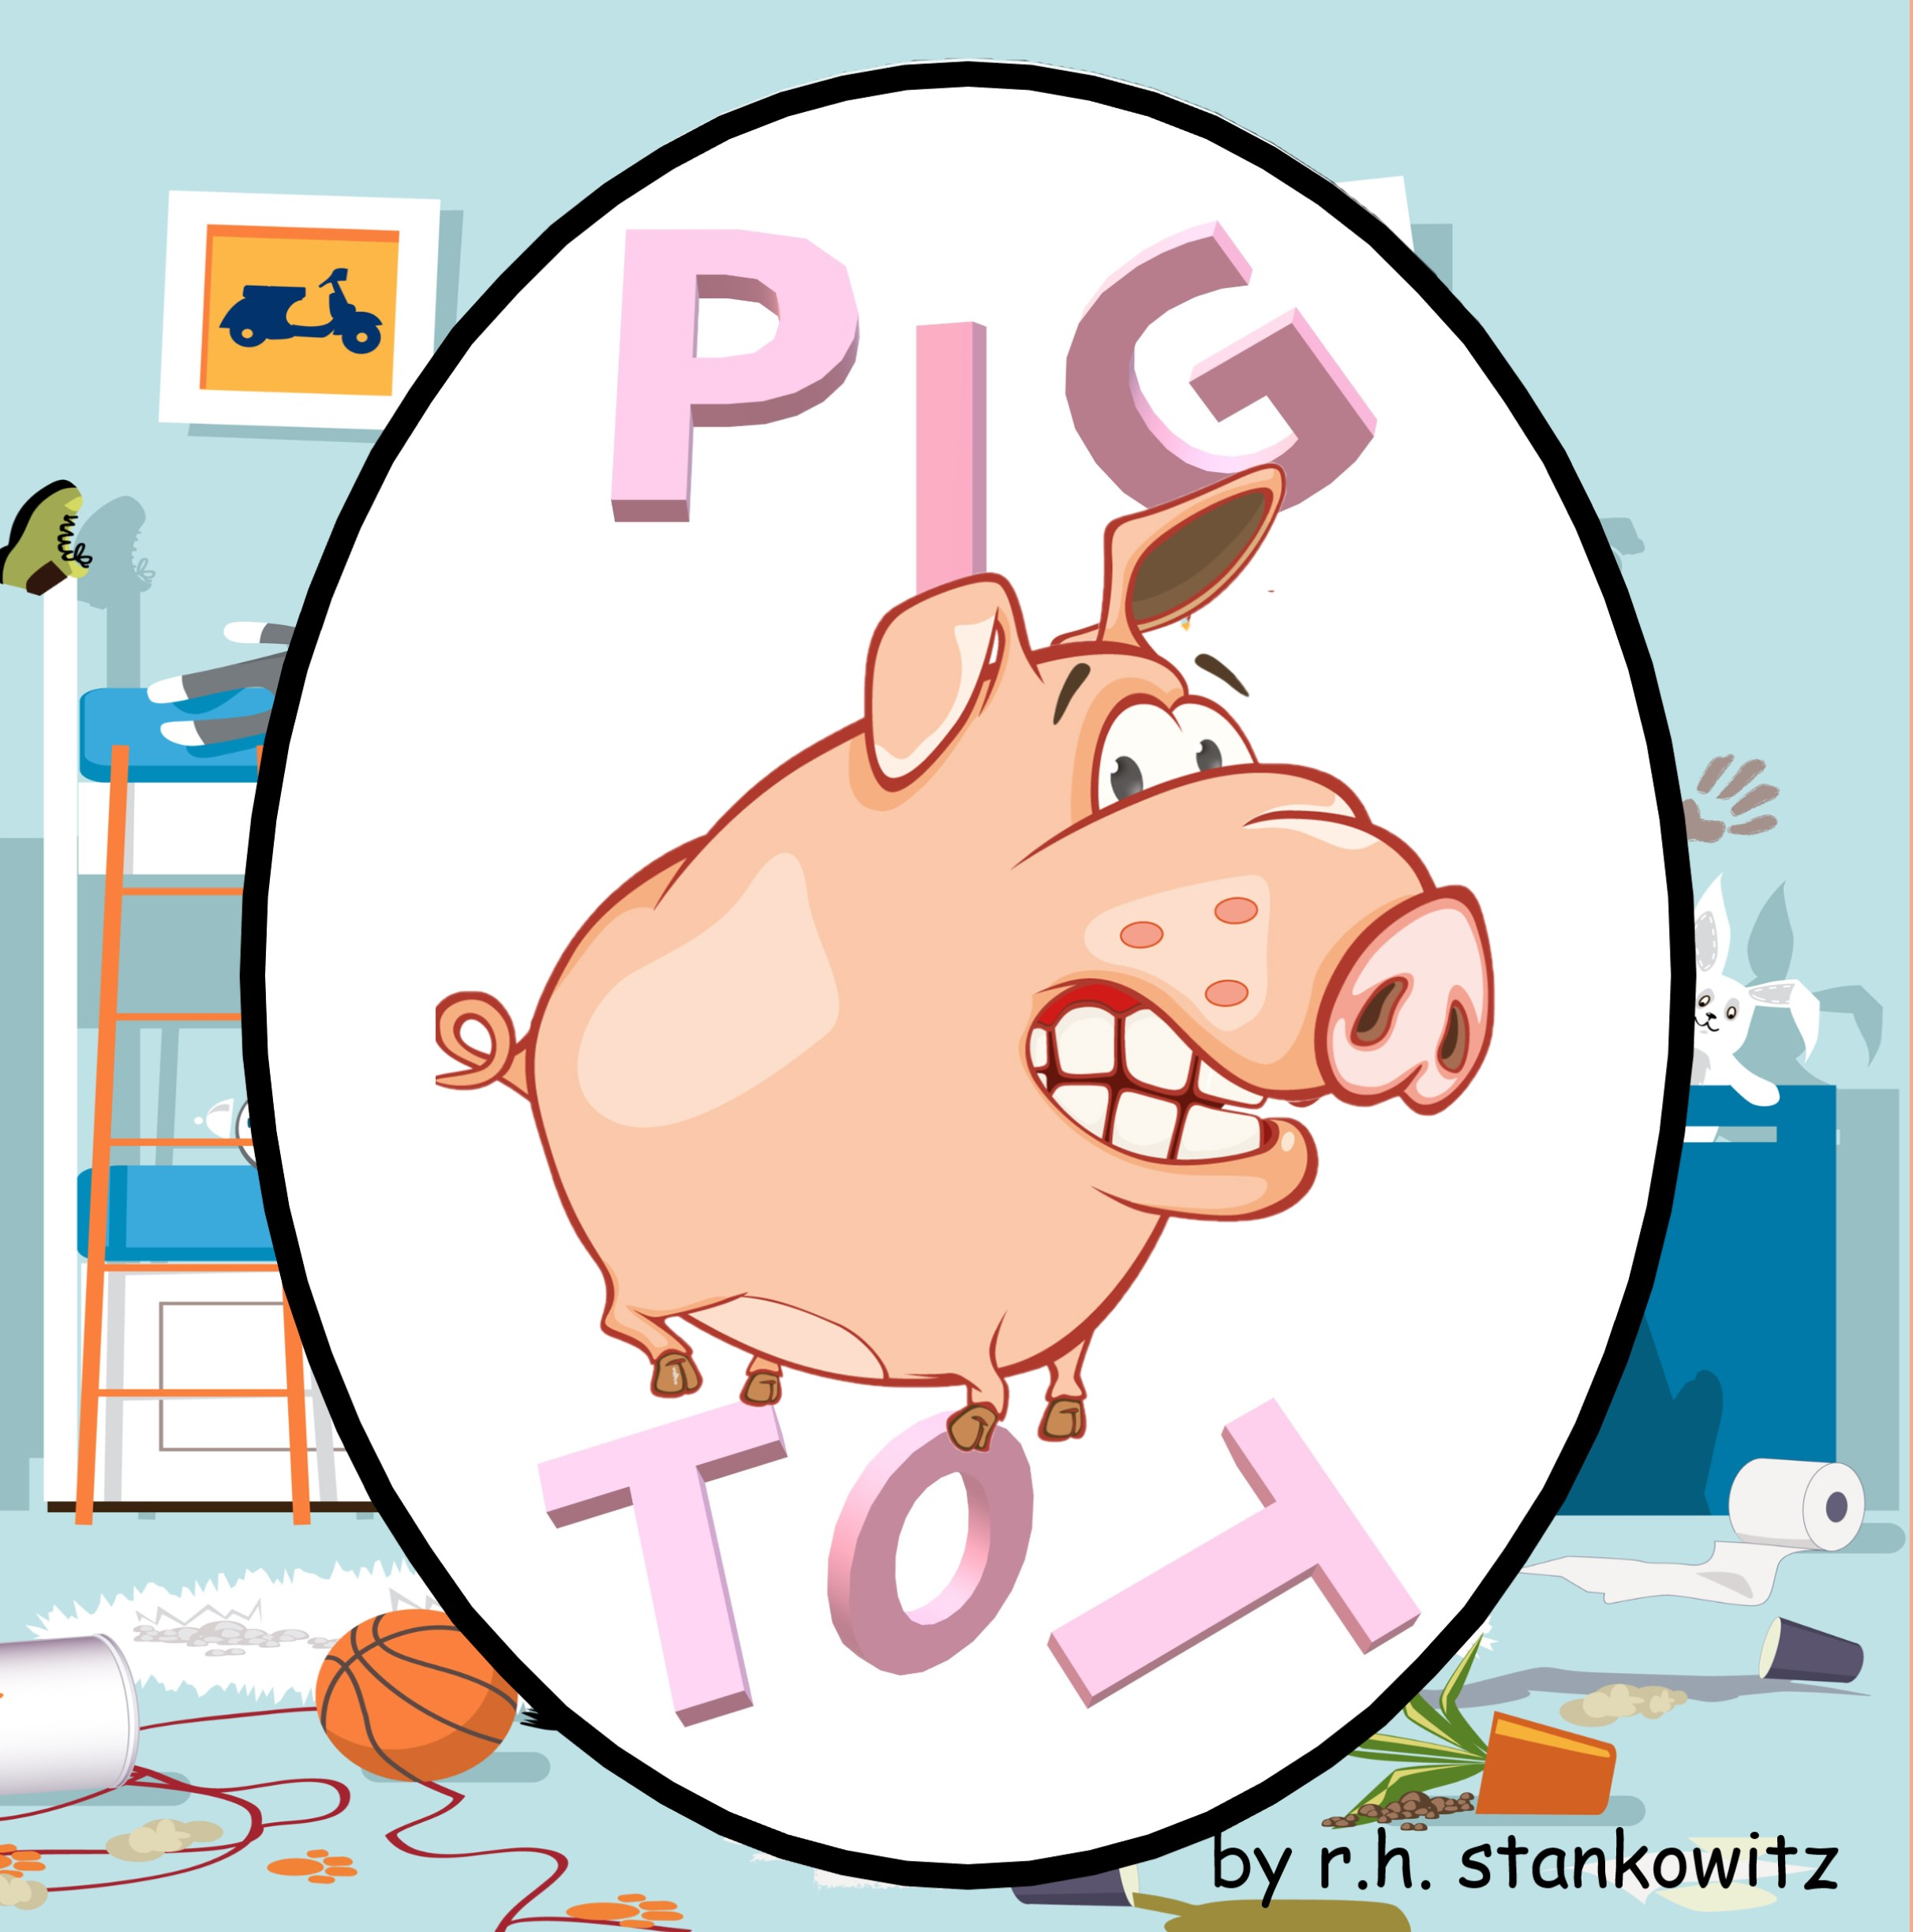 The Pig Tot Book: Children's Book Press Release